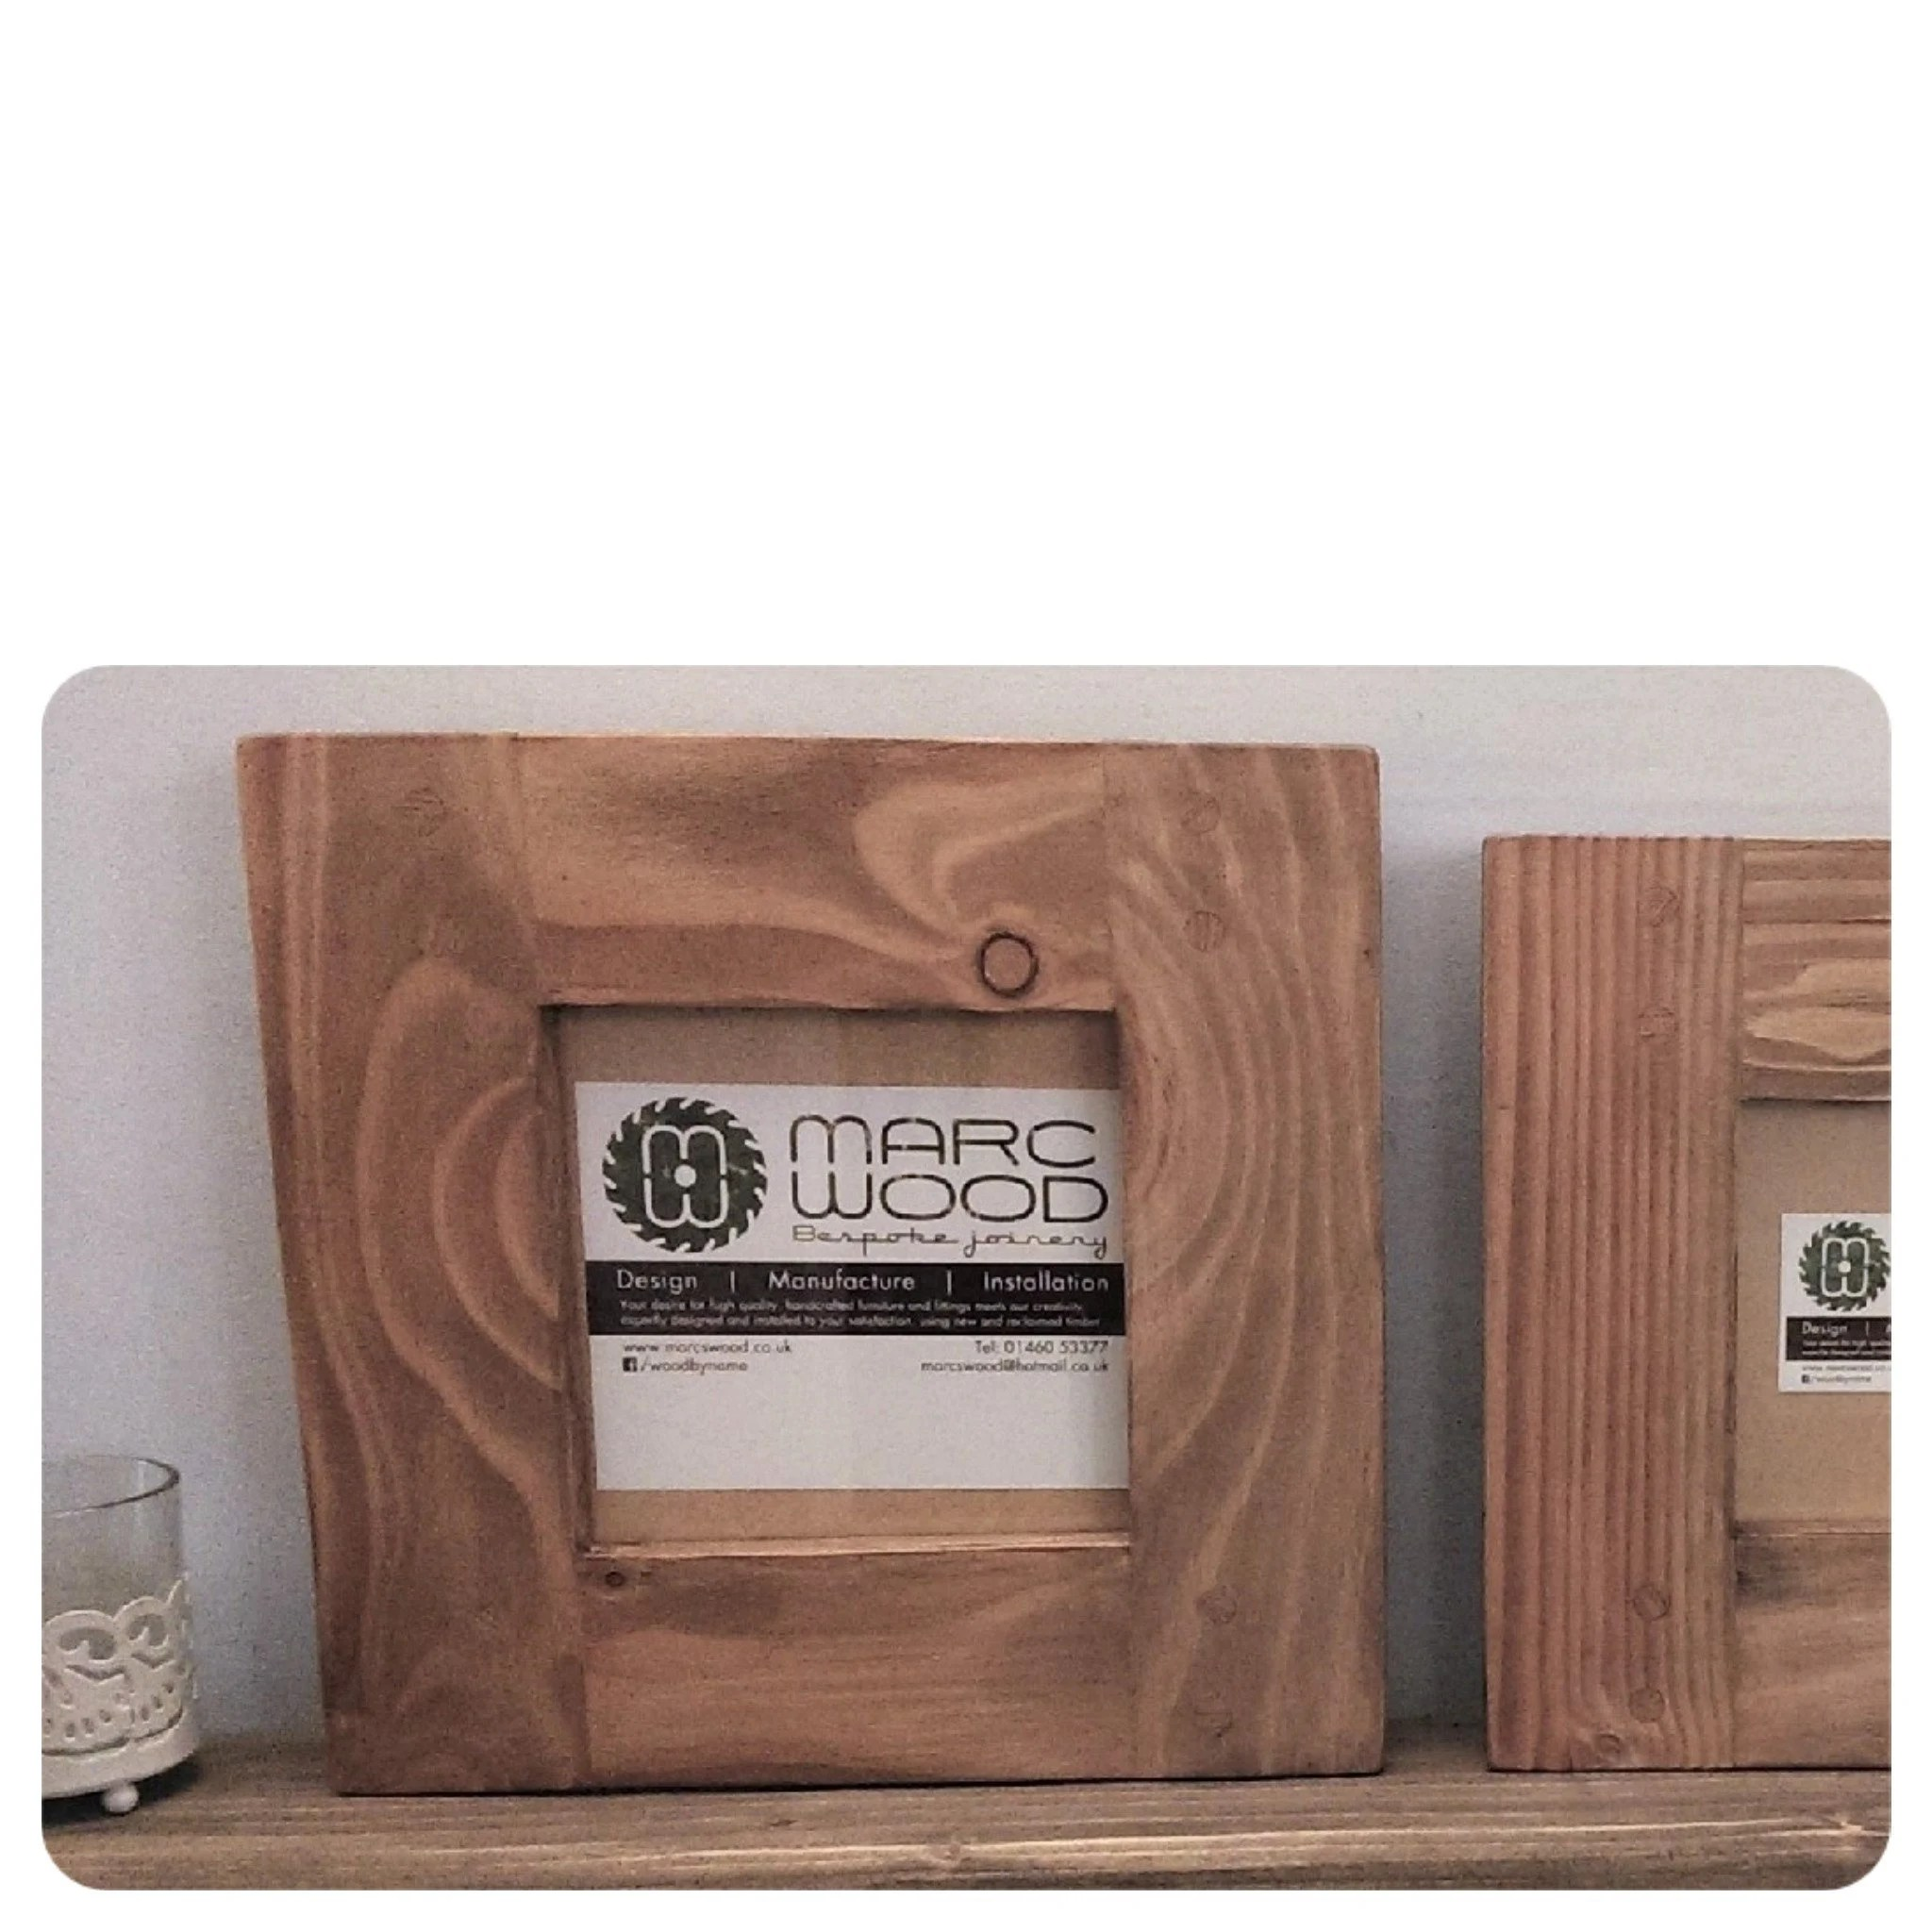 Couchtisch Colombo Small Wood Picture And Photo Frame Square 6 X 6 Inch Thick Light Wood Frame Eco Wood Handmade Modern Rustic Frames From Somerset Uk